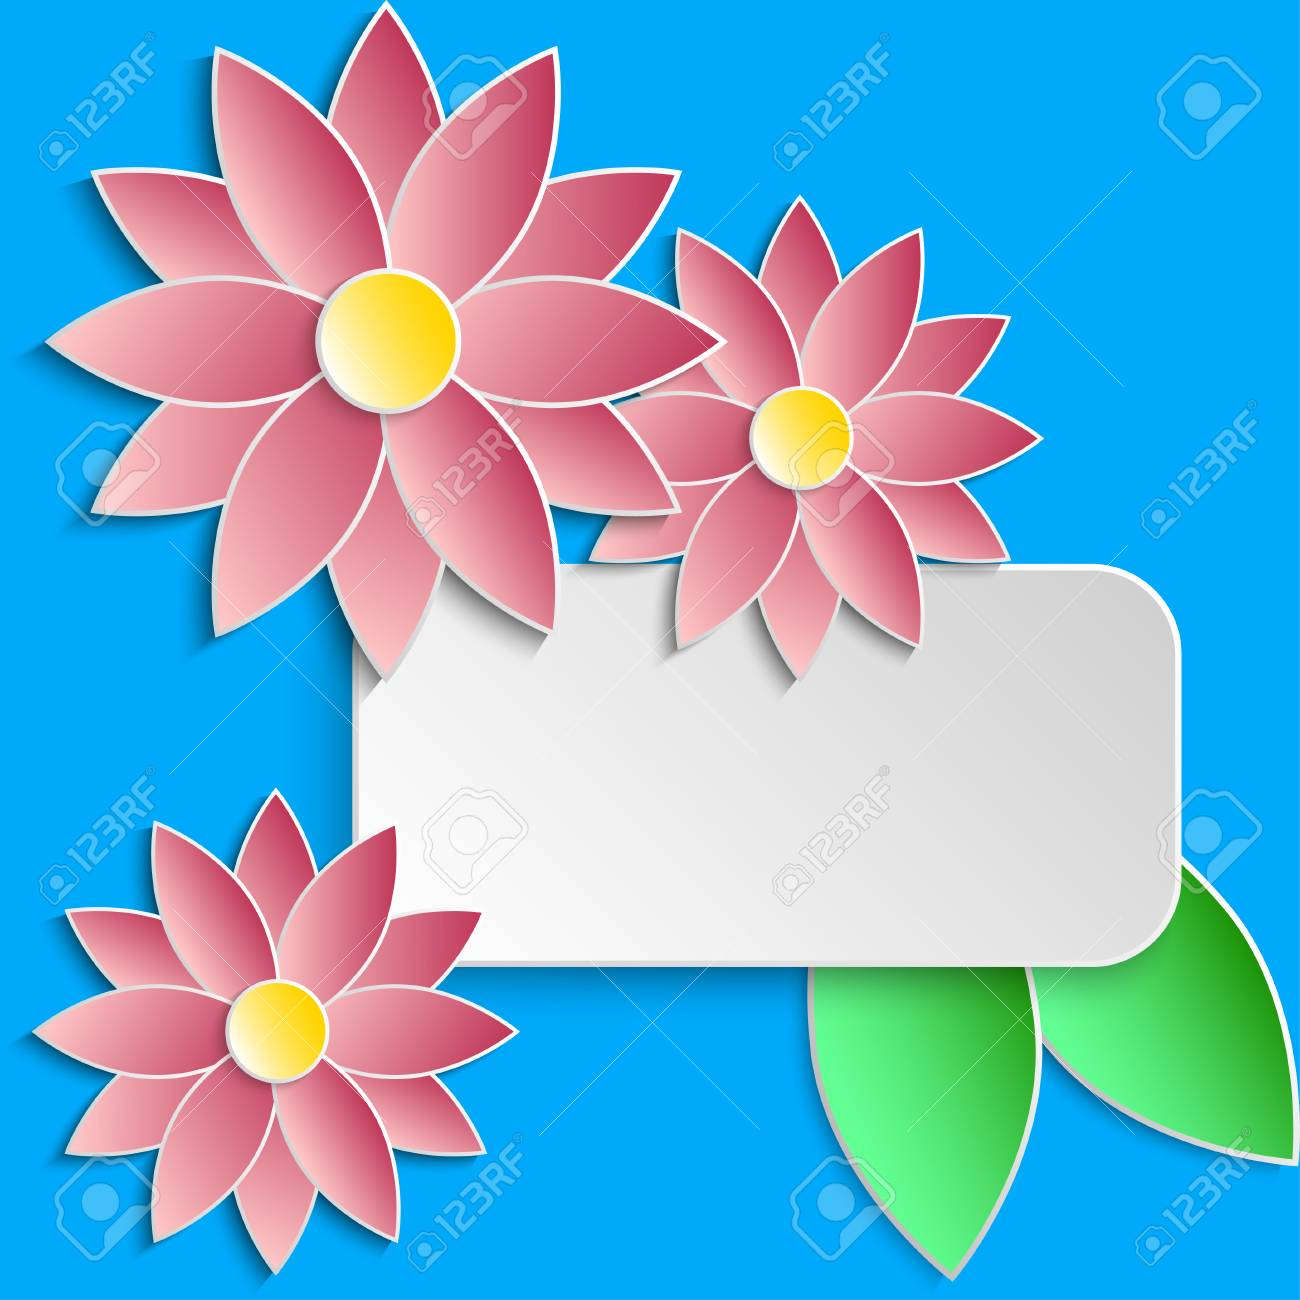 Greeting Card Template With Paper Water Lily Flowers. Vector ...